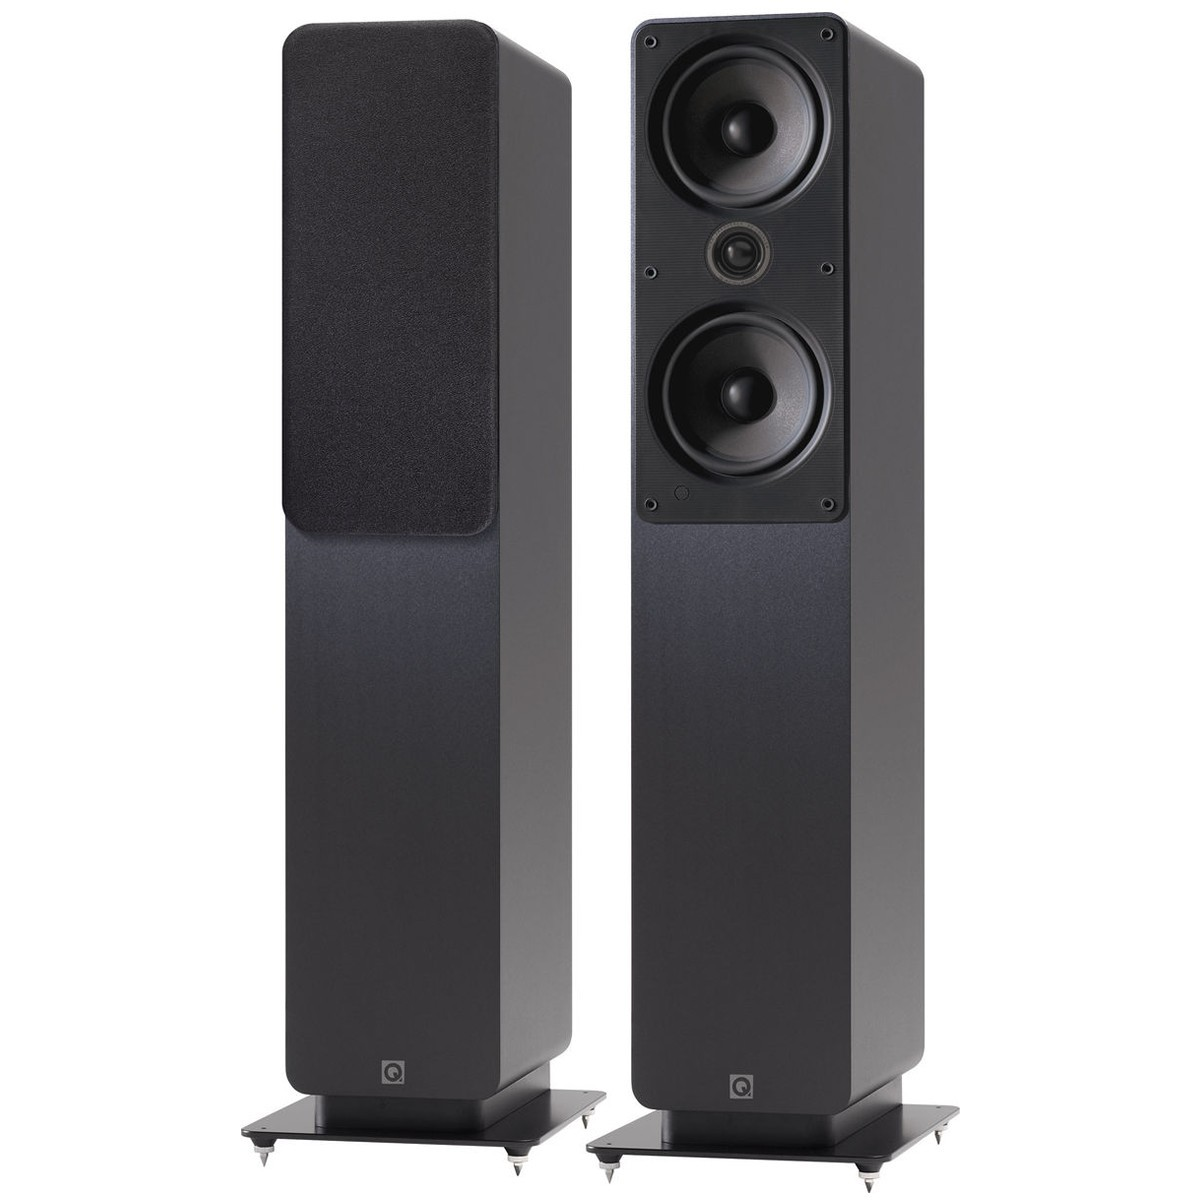 Q acoustics 2050i Speakers Graphite Black (pair)